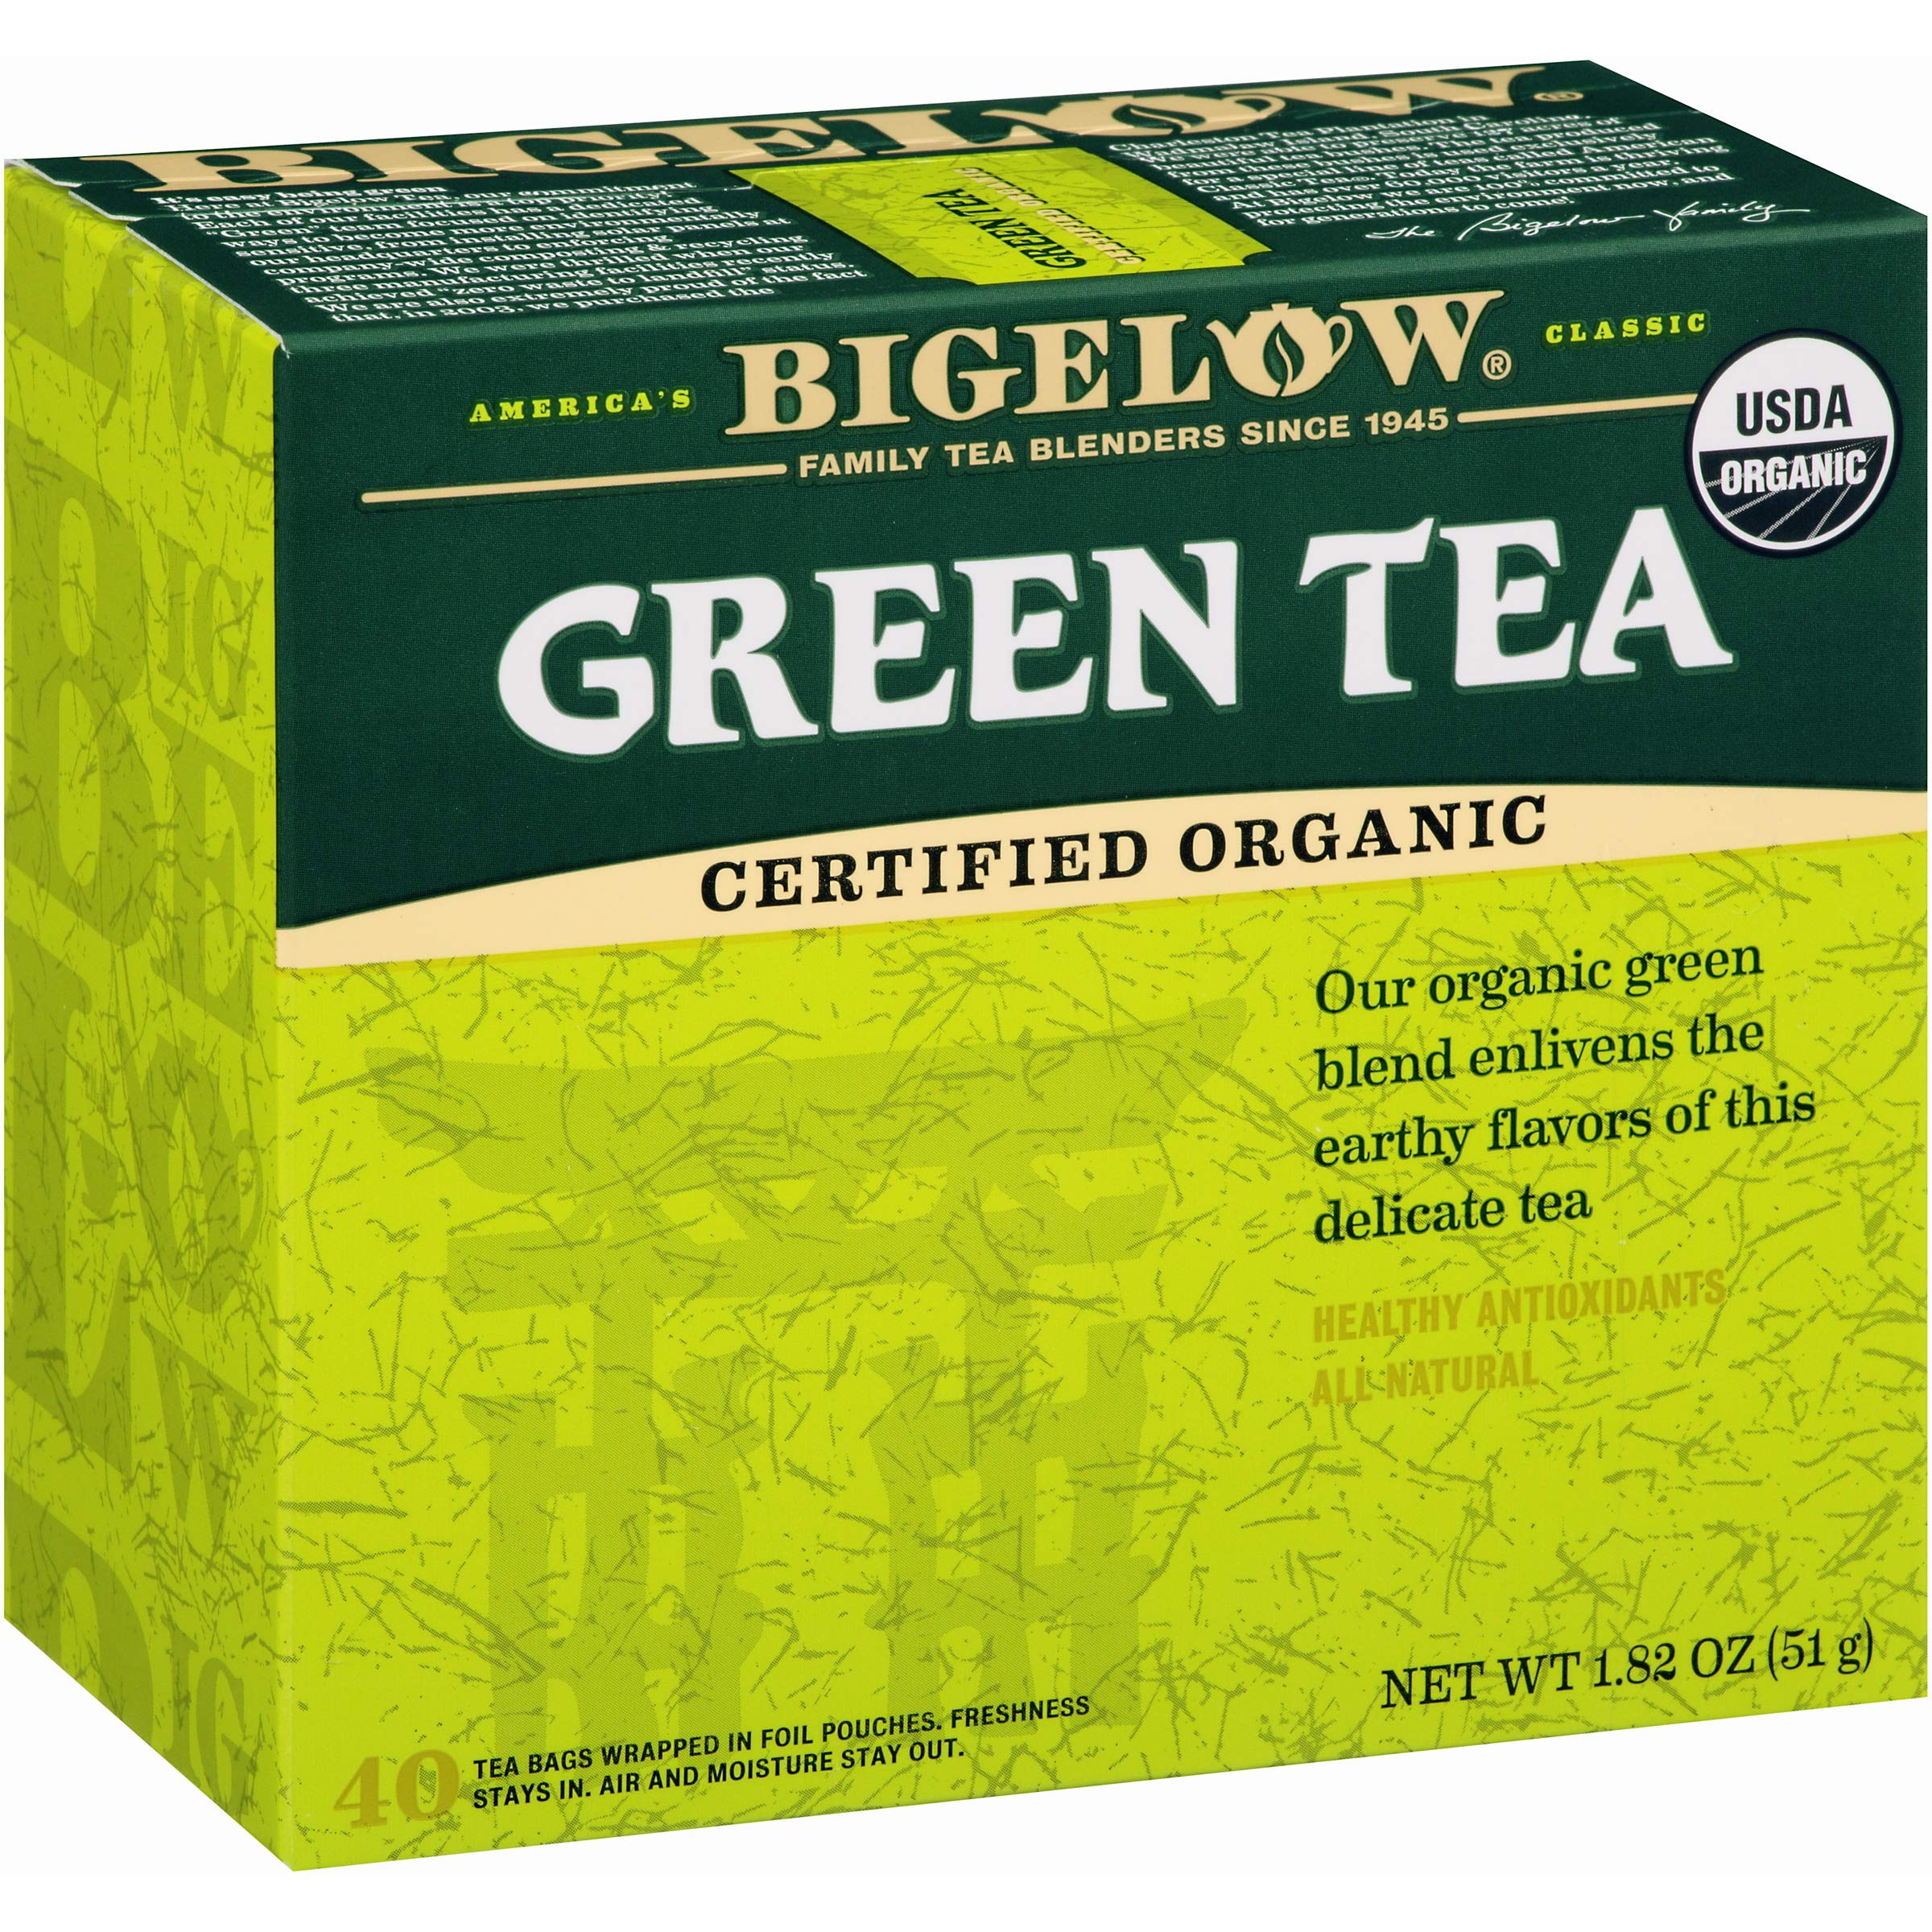 Bigelow Organic Green Tea 40 Bags (Pack of 6), 240 Tea Bags Total. Organic Caffeinated Individual Green Tea Bags, for Hot Tea or Iced Tea, Drink Plain or Sweetened with Honey or Sugar